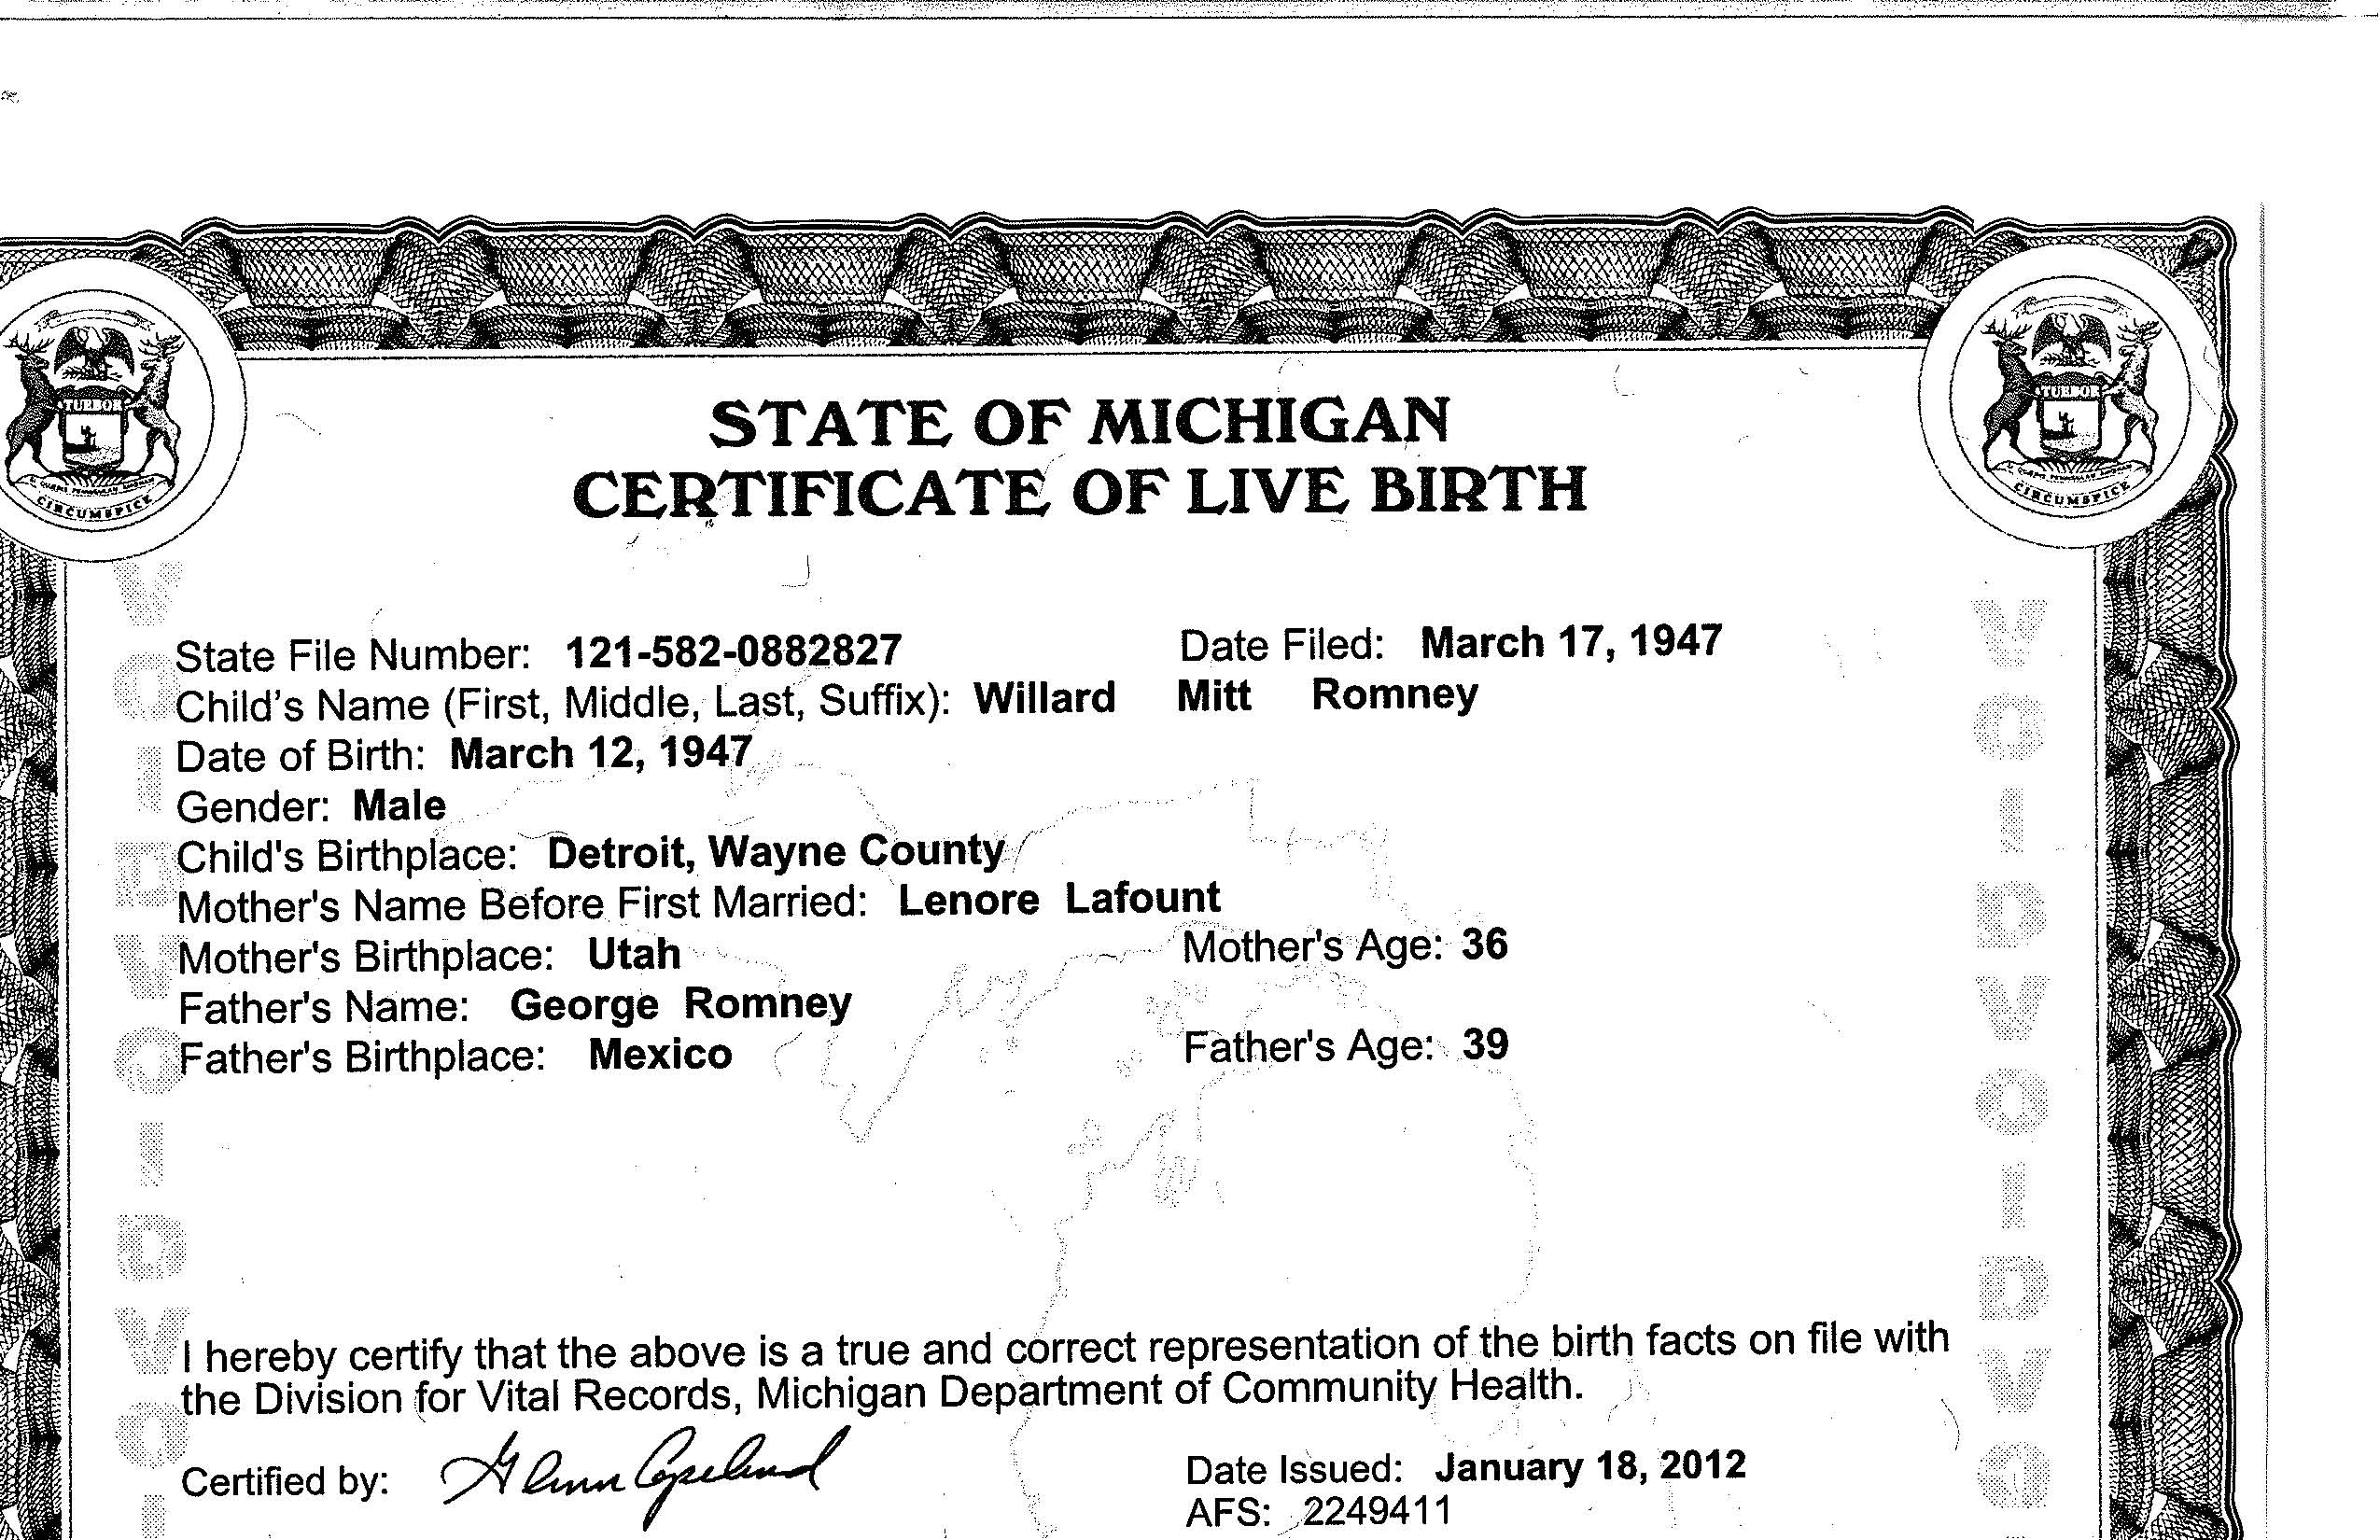 Mitt Romney birth certificate (short form)